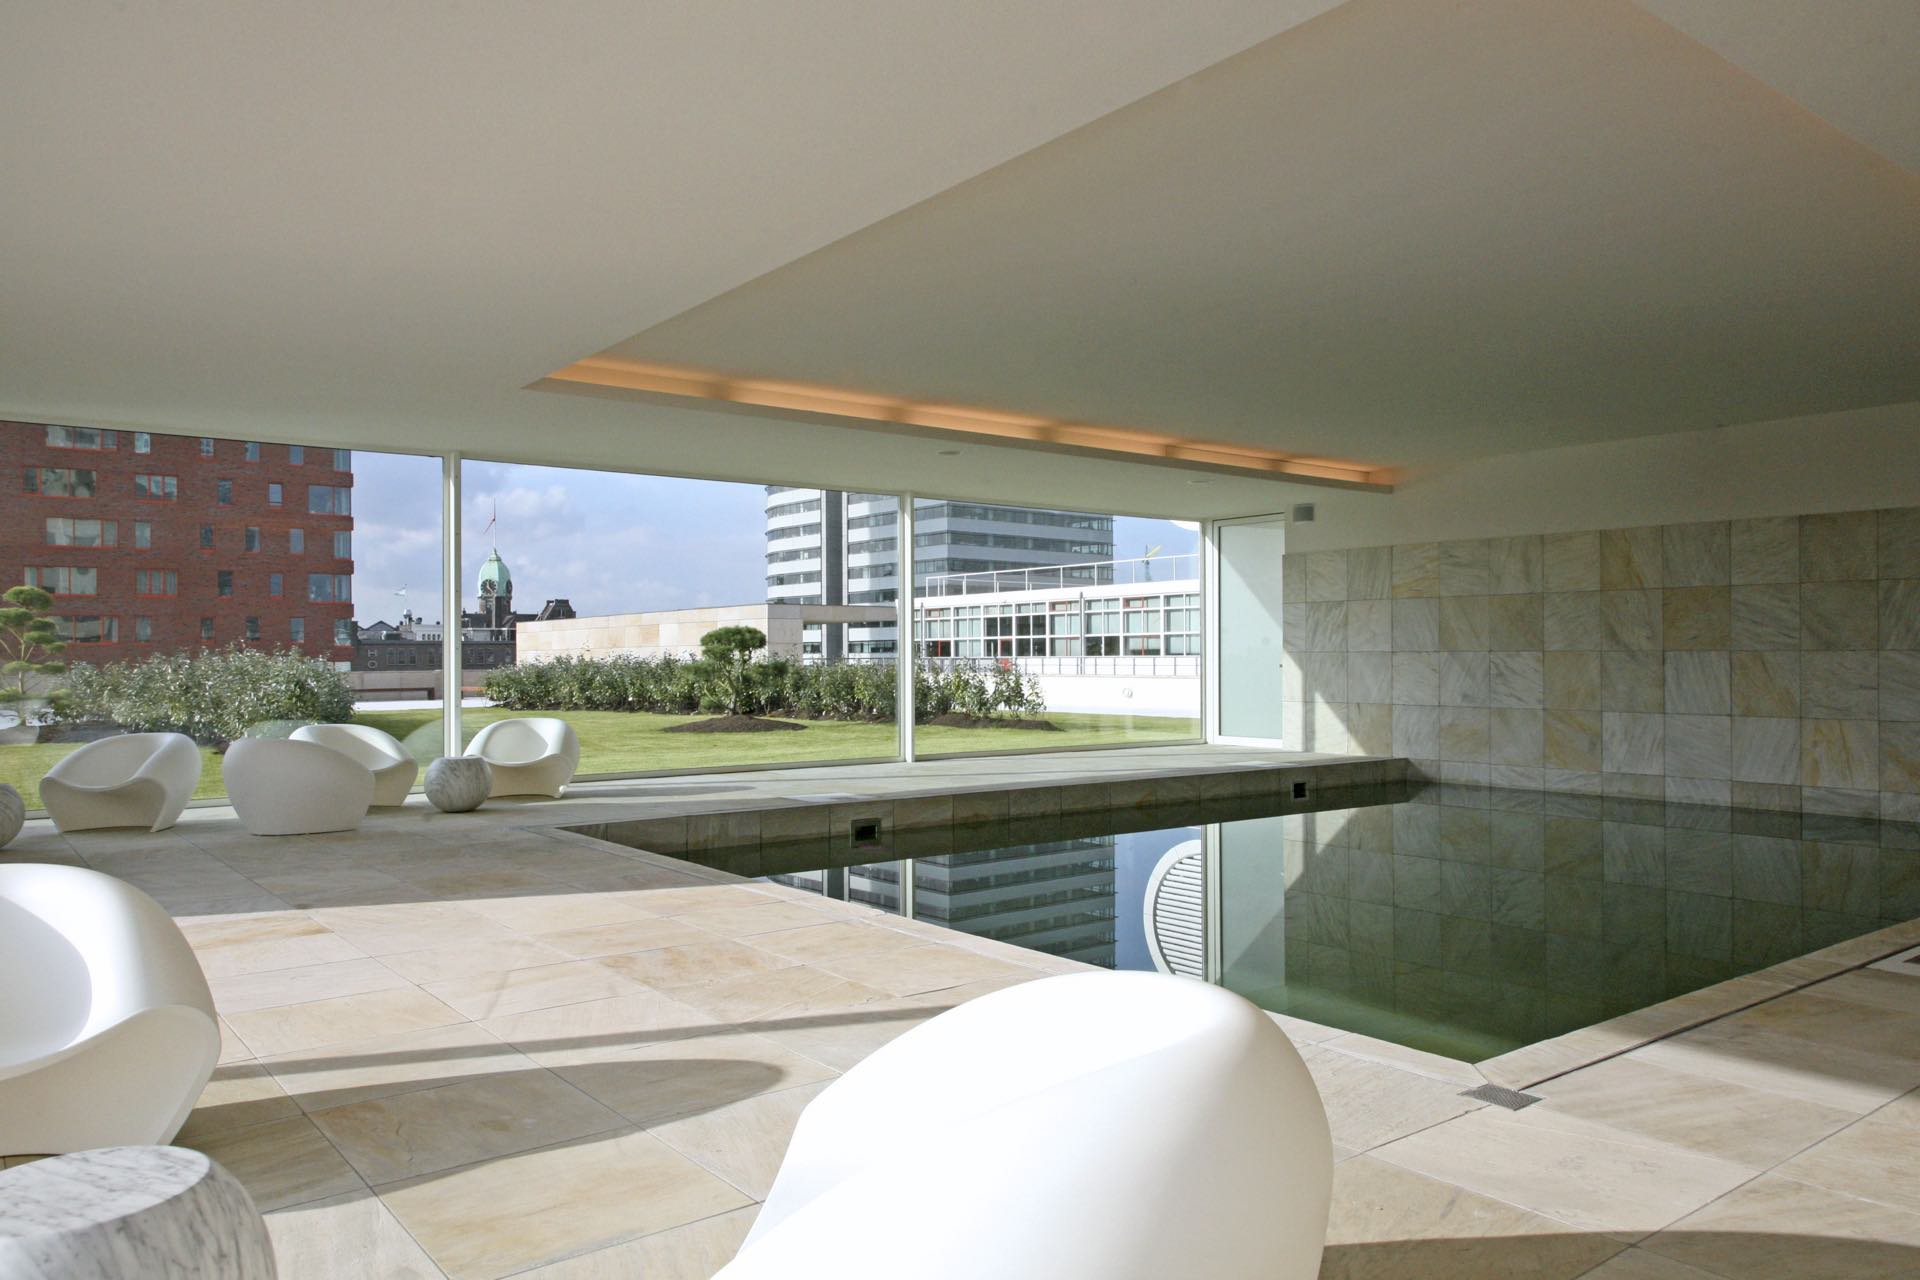 New-Orleans-Rotterdam-swimmingpool